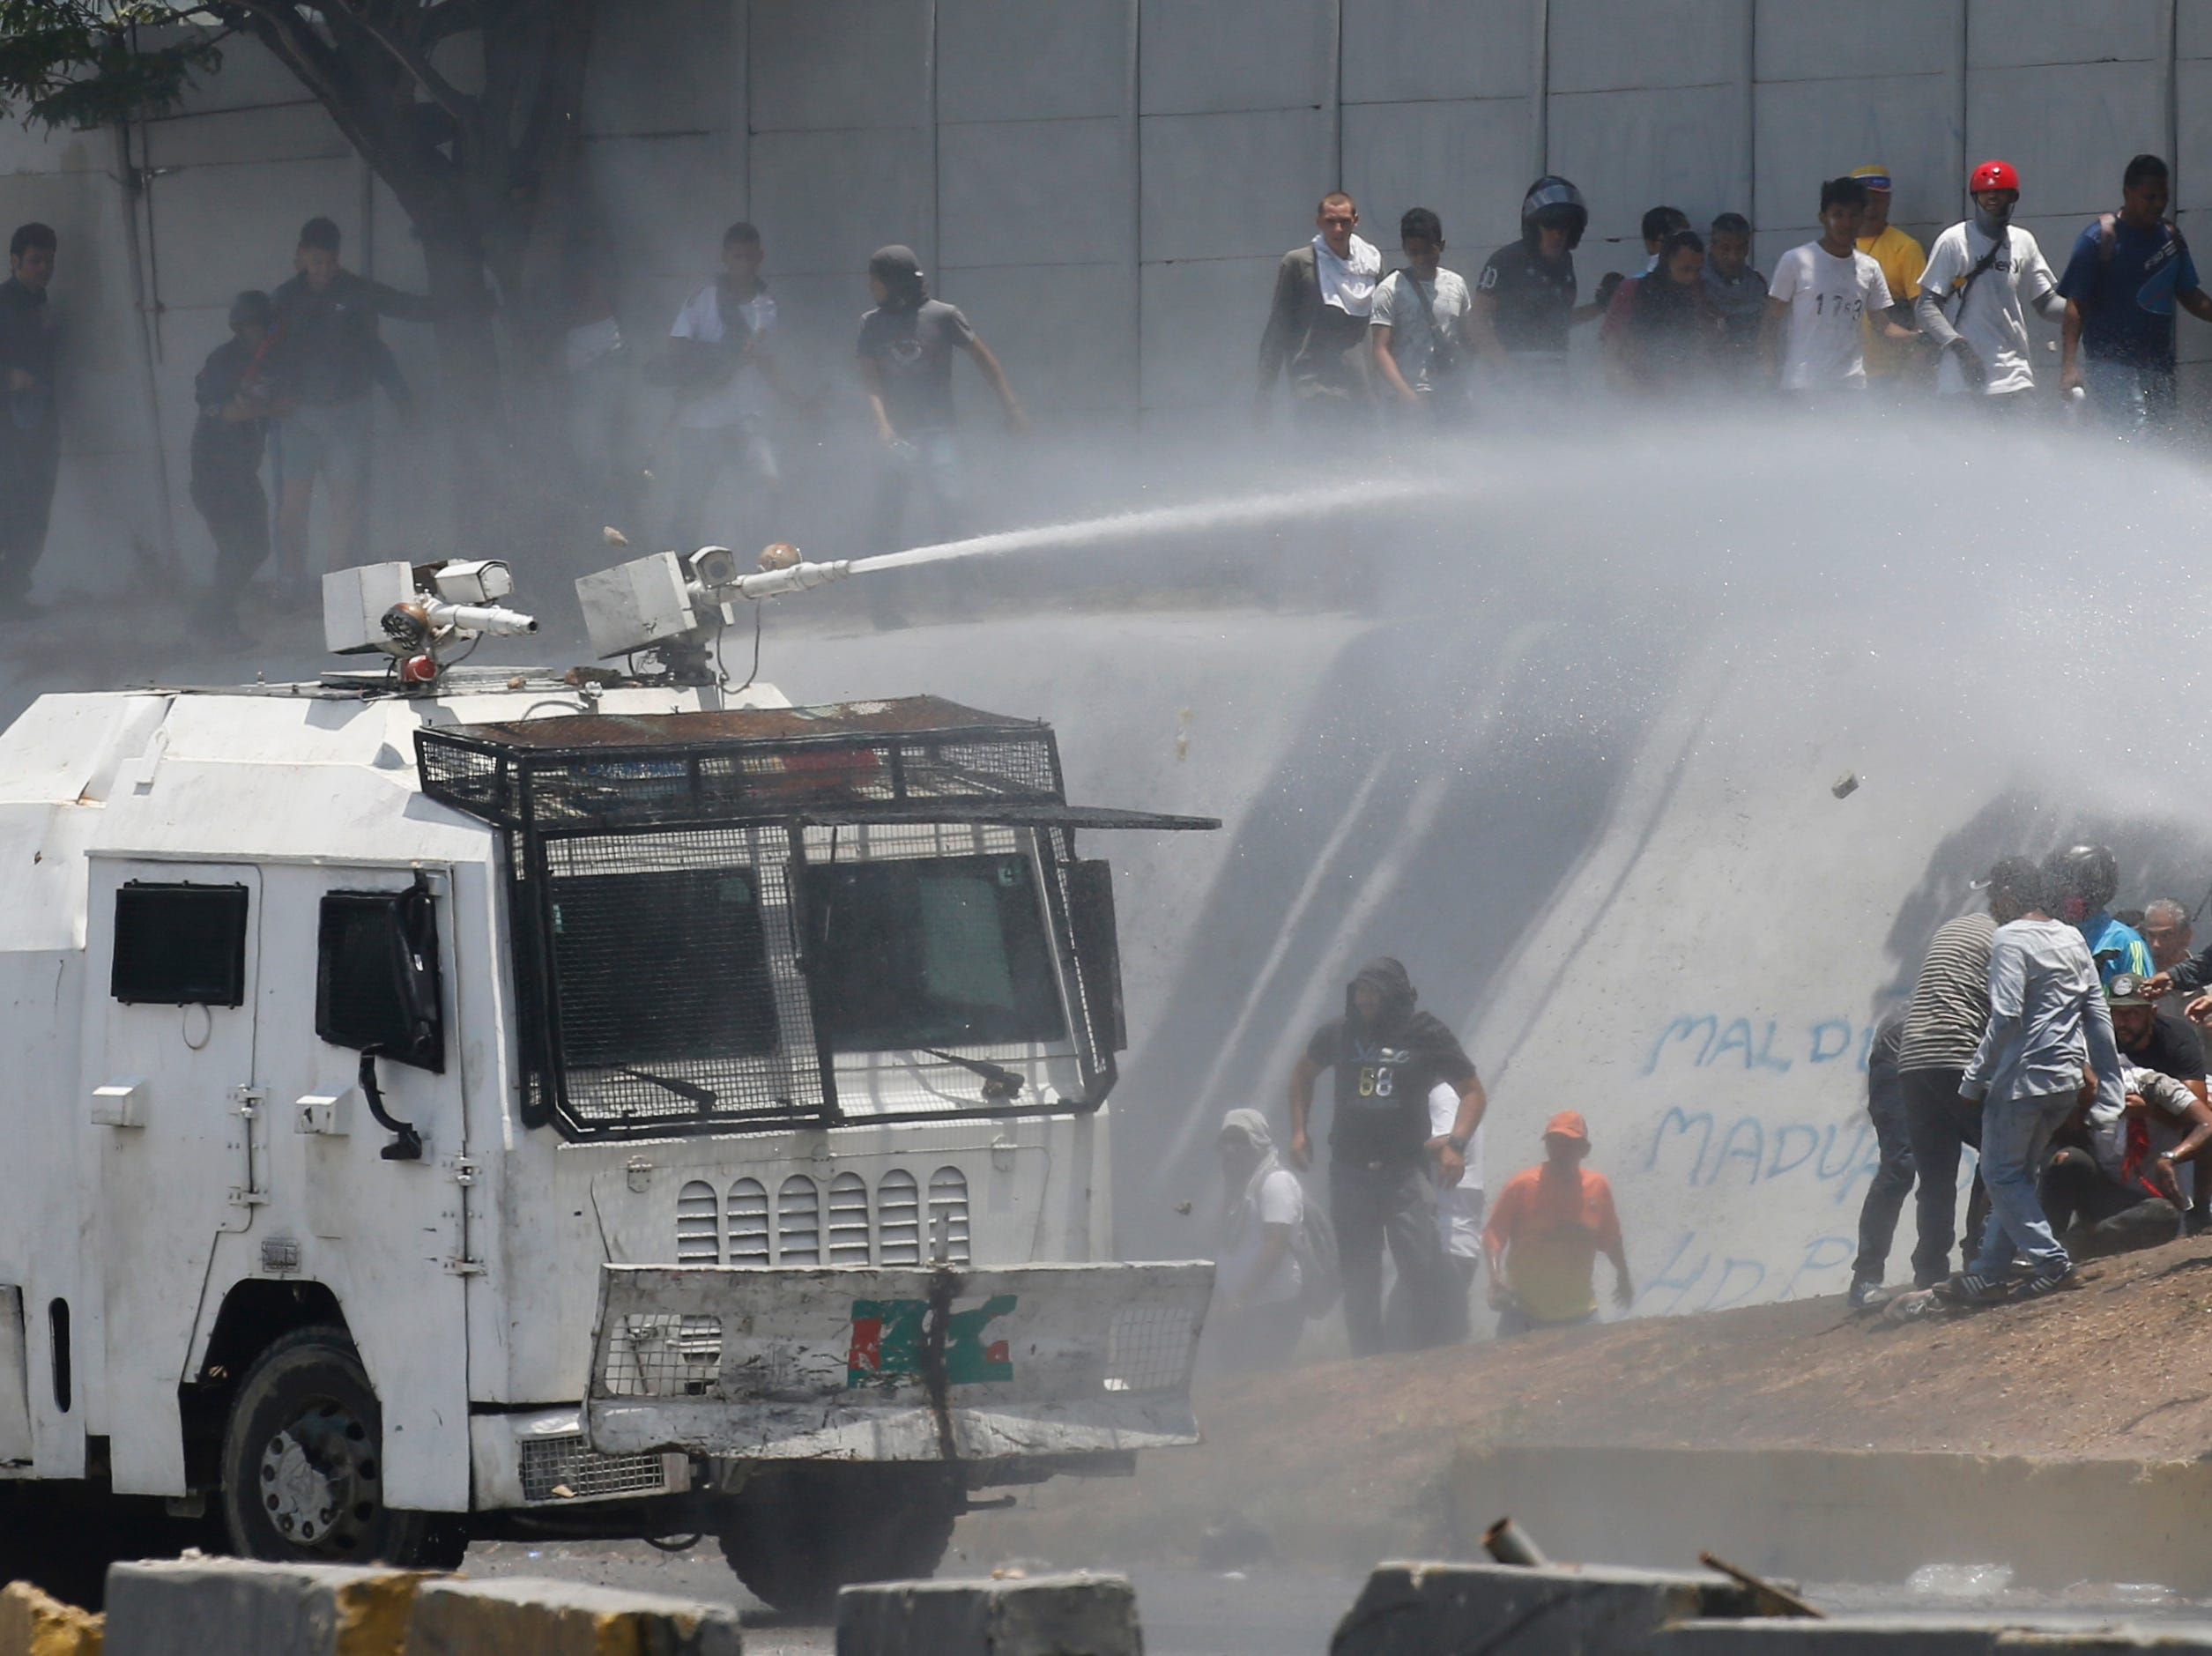 A Bolivarian National Guard water canon sprays opponents of Venezuela's President Nicolas Maduro during an attempted military uprising and anti-government protests in Caracas, Venezuela, Tuesday, April 30, 2019. Venezuelan opposition leader Juan Guaido and opposition leader Leopoldo Lopez, recently released from prison, took to the streets with a small contingent of heavily armed troops early Tuesday in a bold and risky call for the military to rise up and oust Maduro.